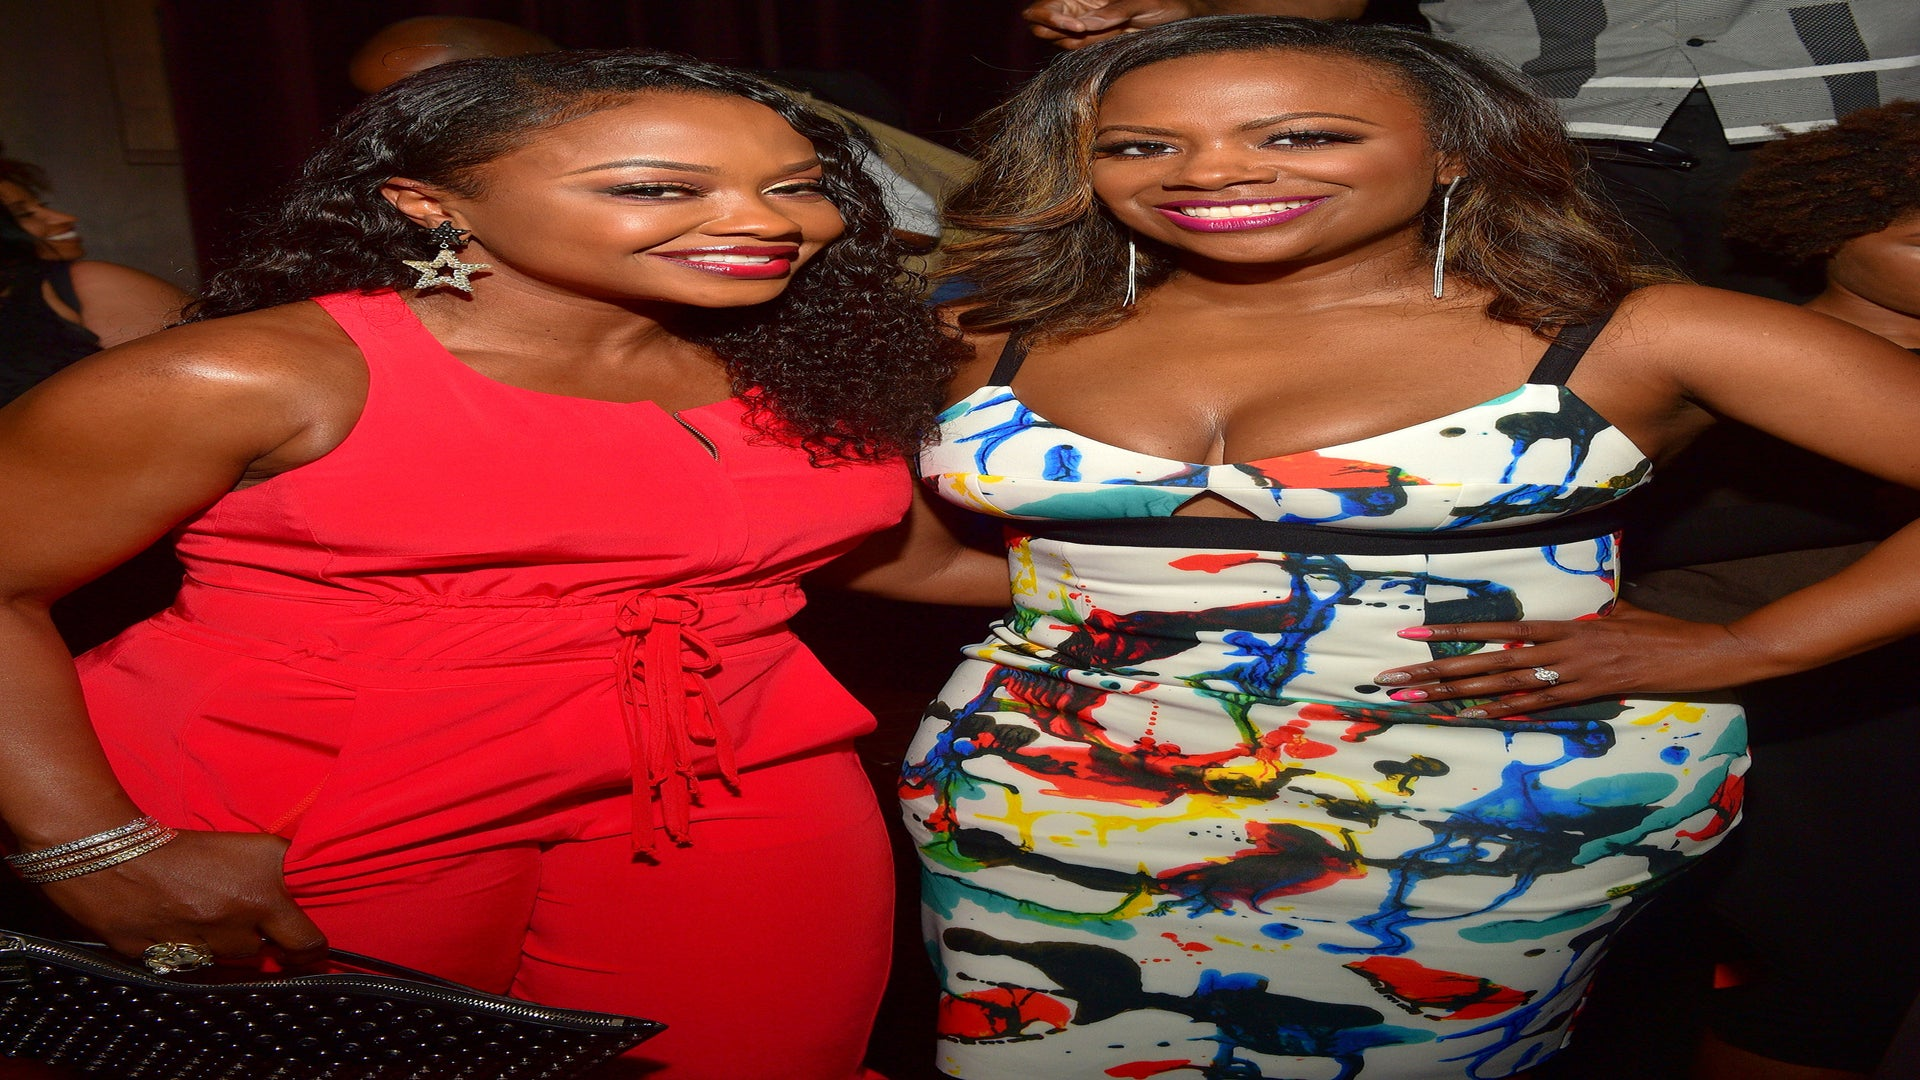 Kandi Burruss Says She and Phaedra Parks 'Can Never Talk Again' After RHOA Drugging Allegations